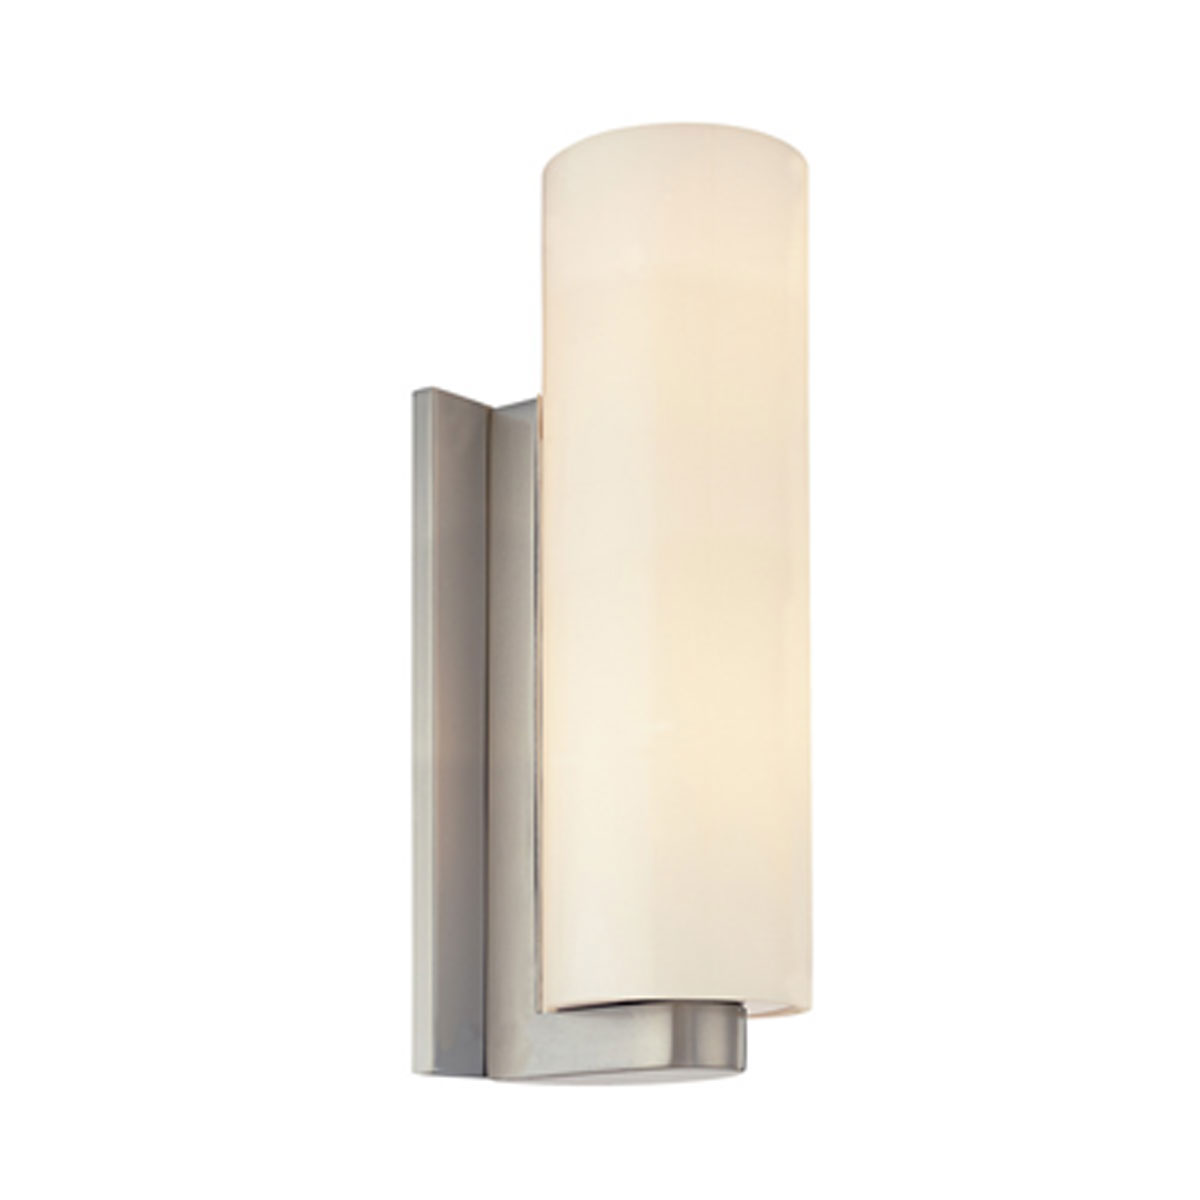 Century tall cylinder wall sconce by sonneman a way of light - Cylindrical wall sconce ...